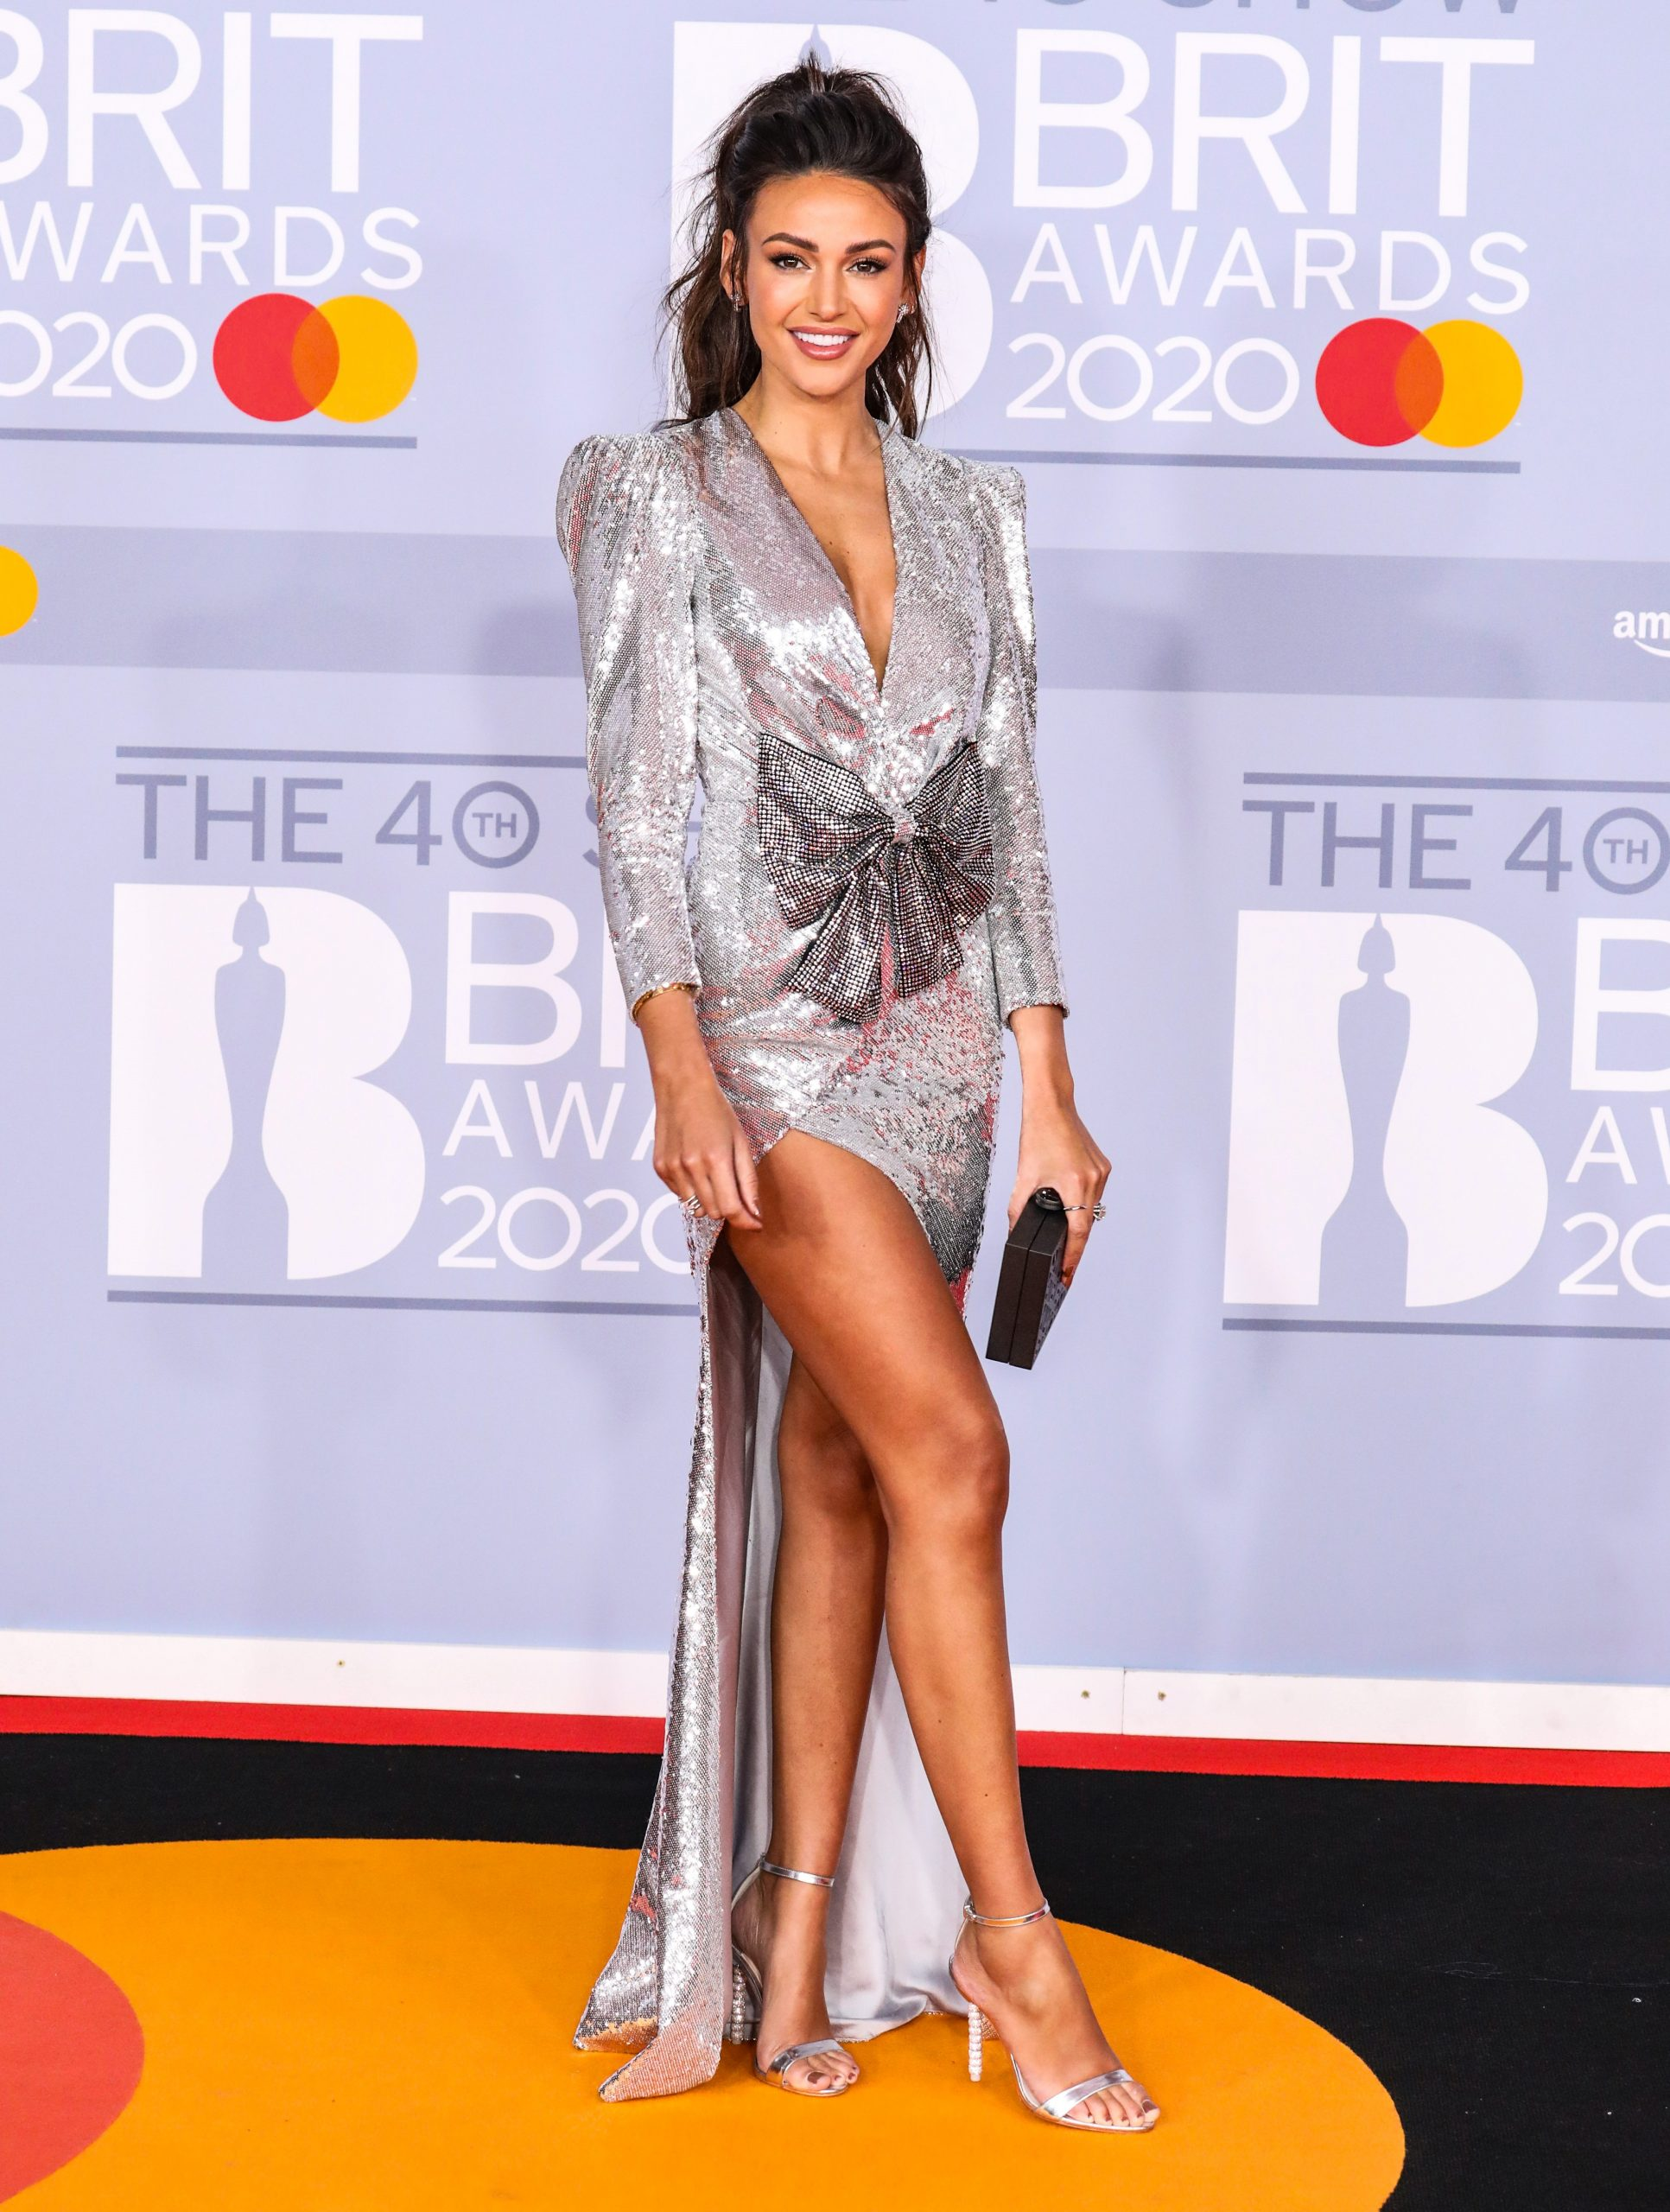 Michelle Keegan at the Brits